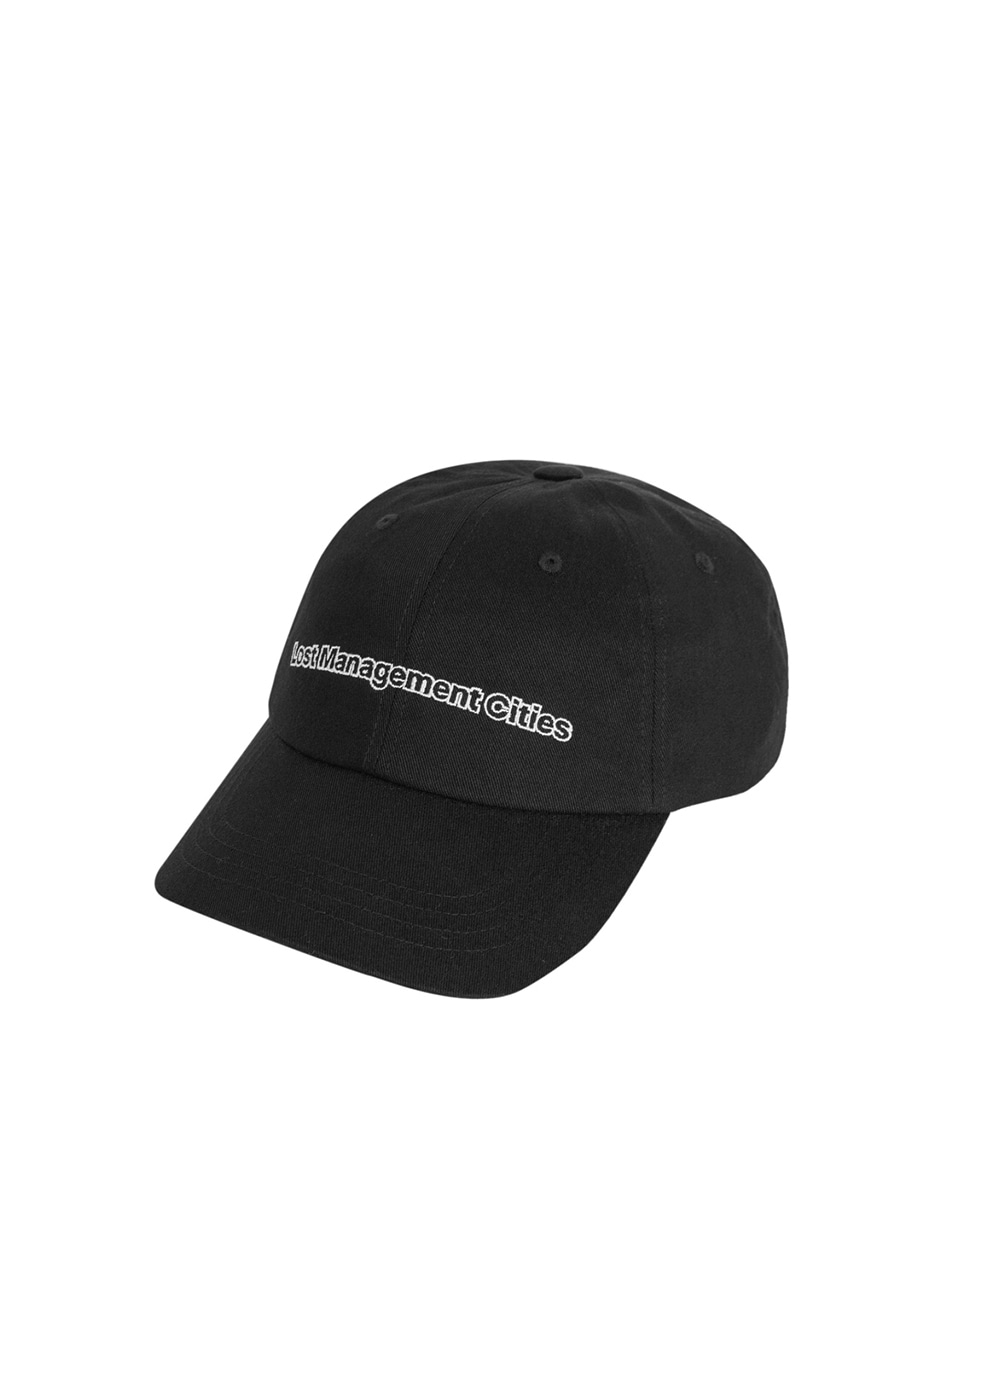 LMC FN OUTLINE 6 PANEL CAP black